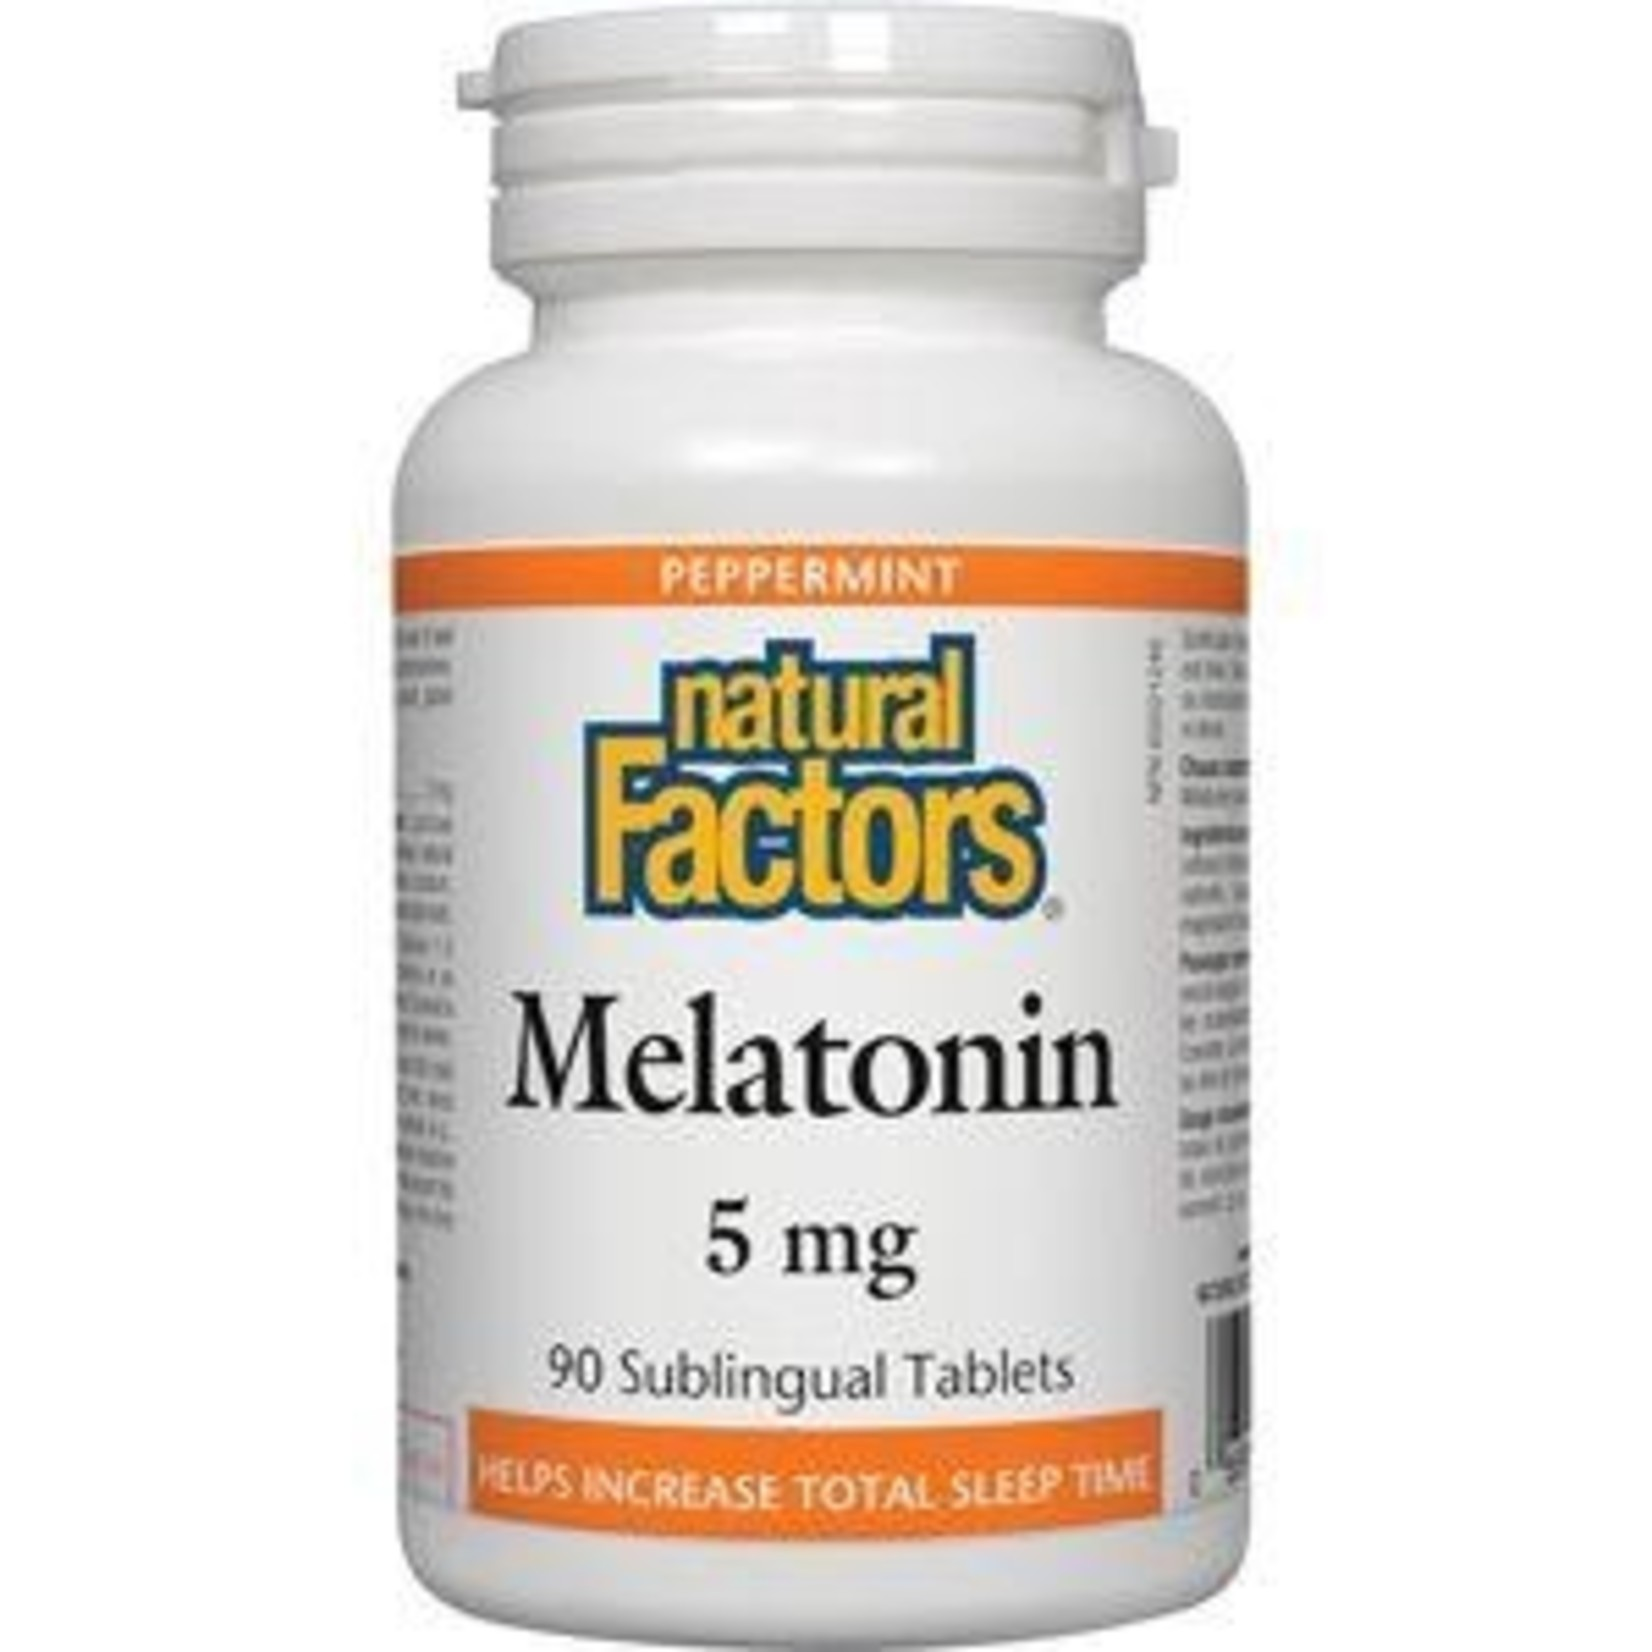 Natural Factors Natural Factors Melatonin 5mg 90 Sublingual Tablets